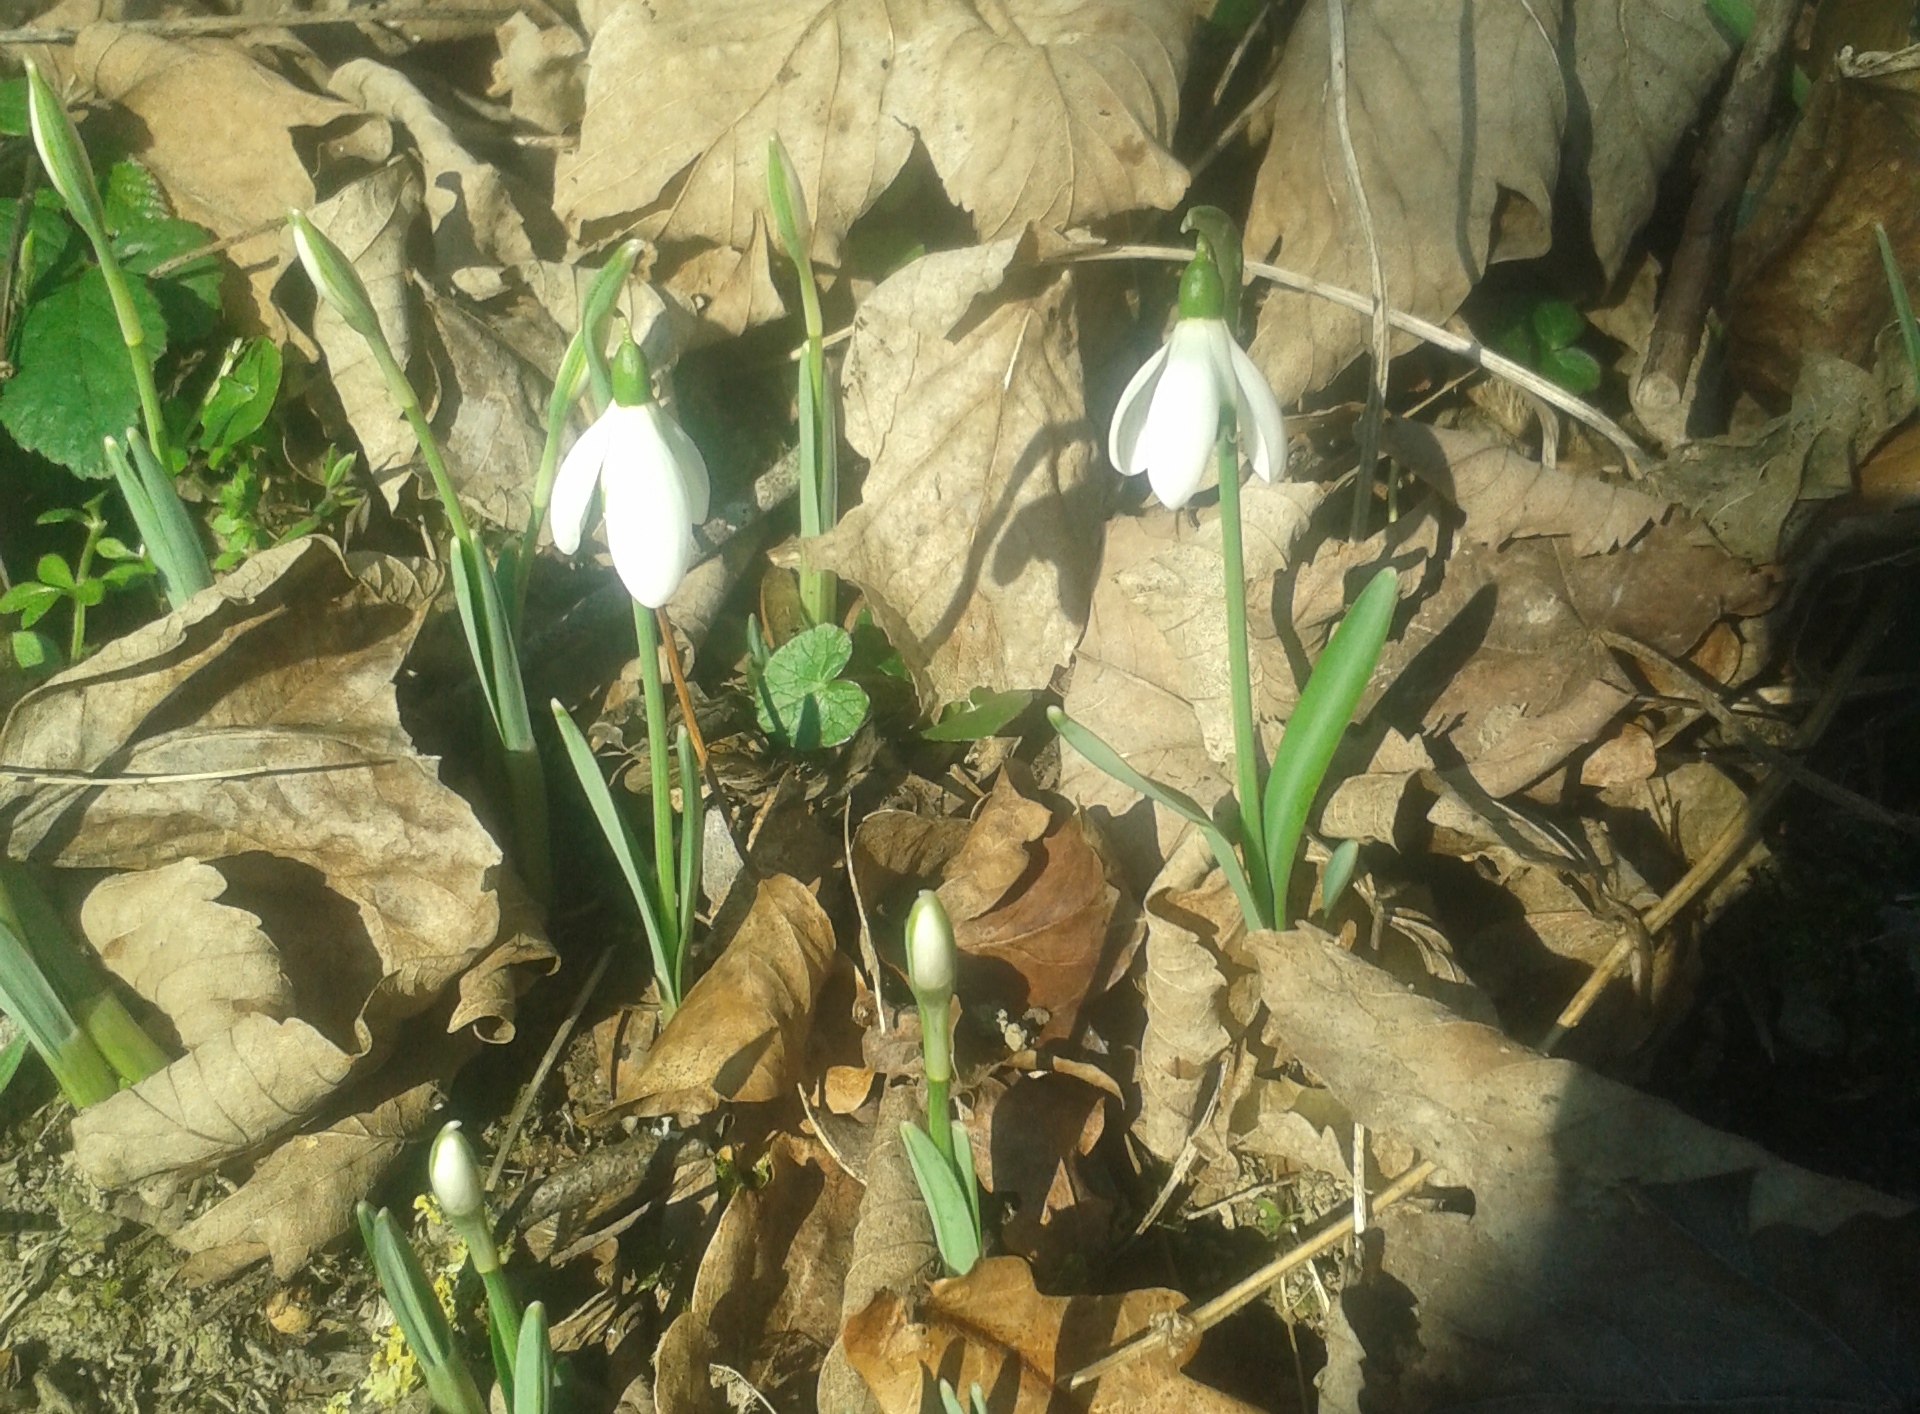 Snowdrops near Eco-Gites of Lenault, a holiday home in Normandy